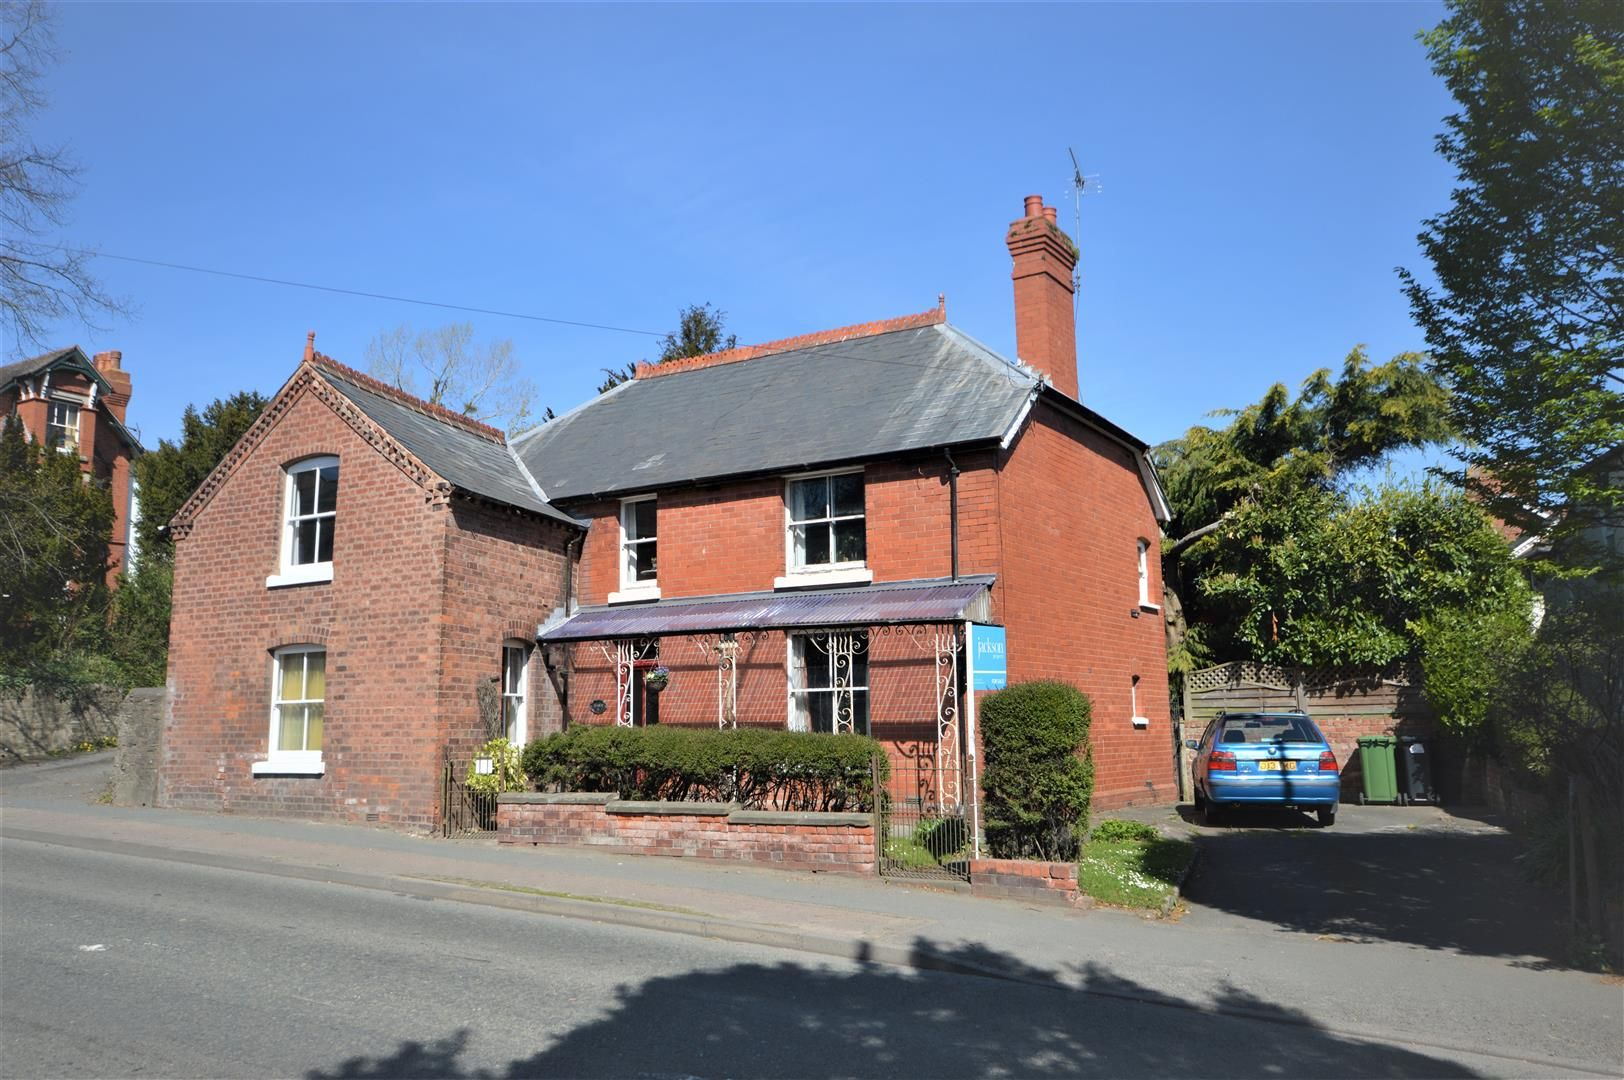 5 bed detached for sale in Leominster, HR6